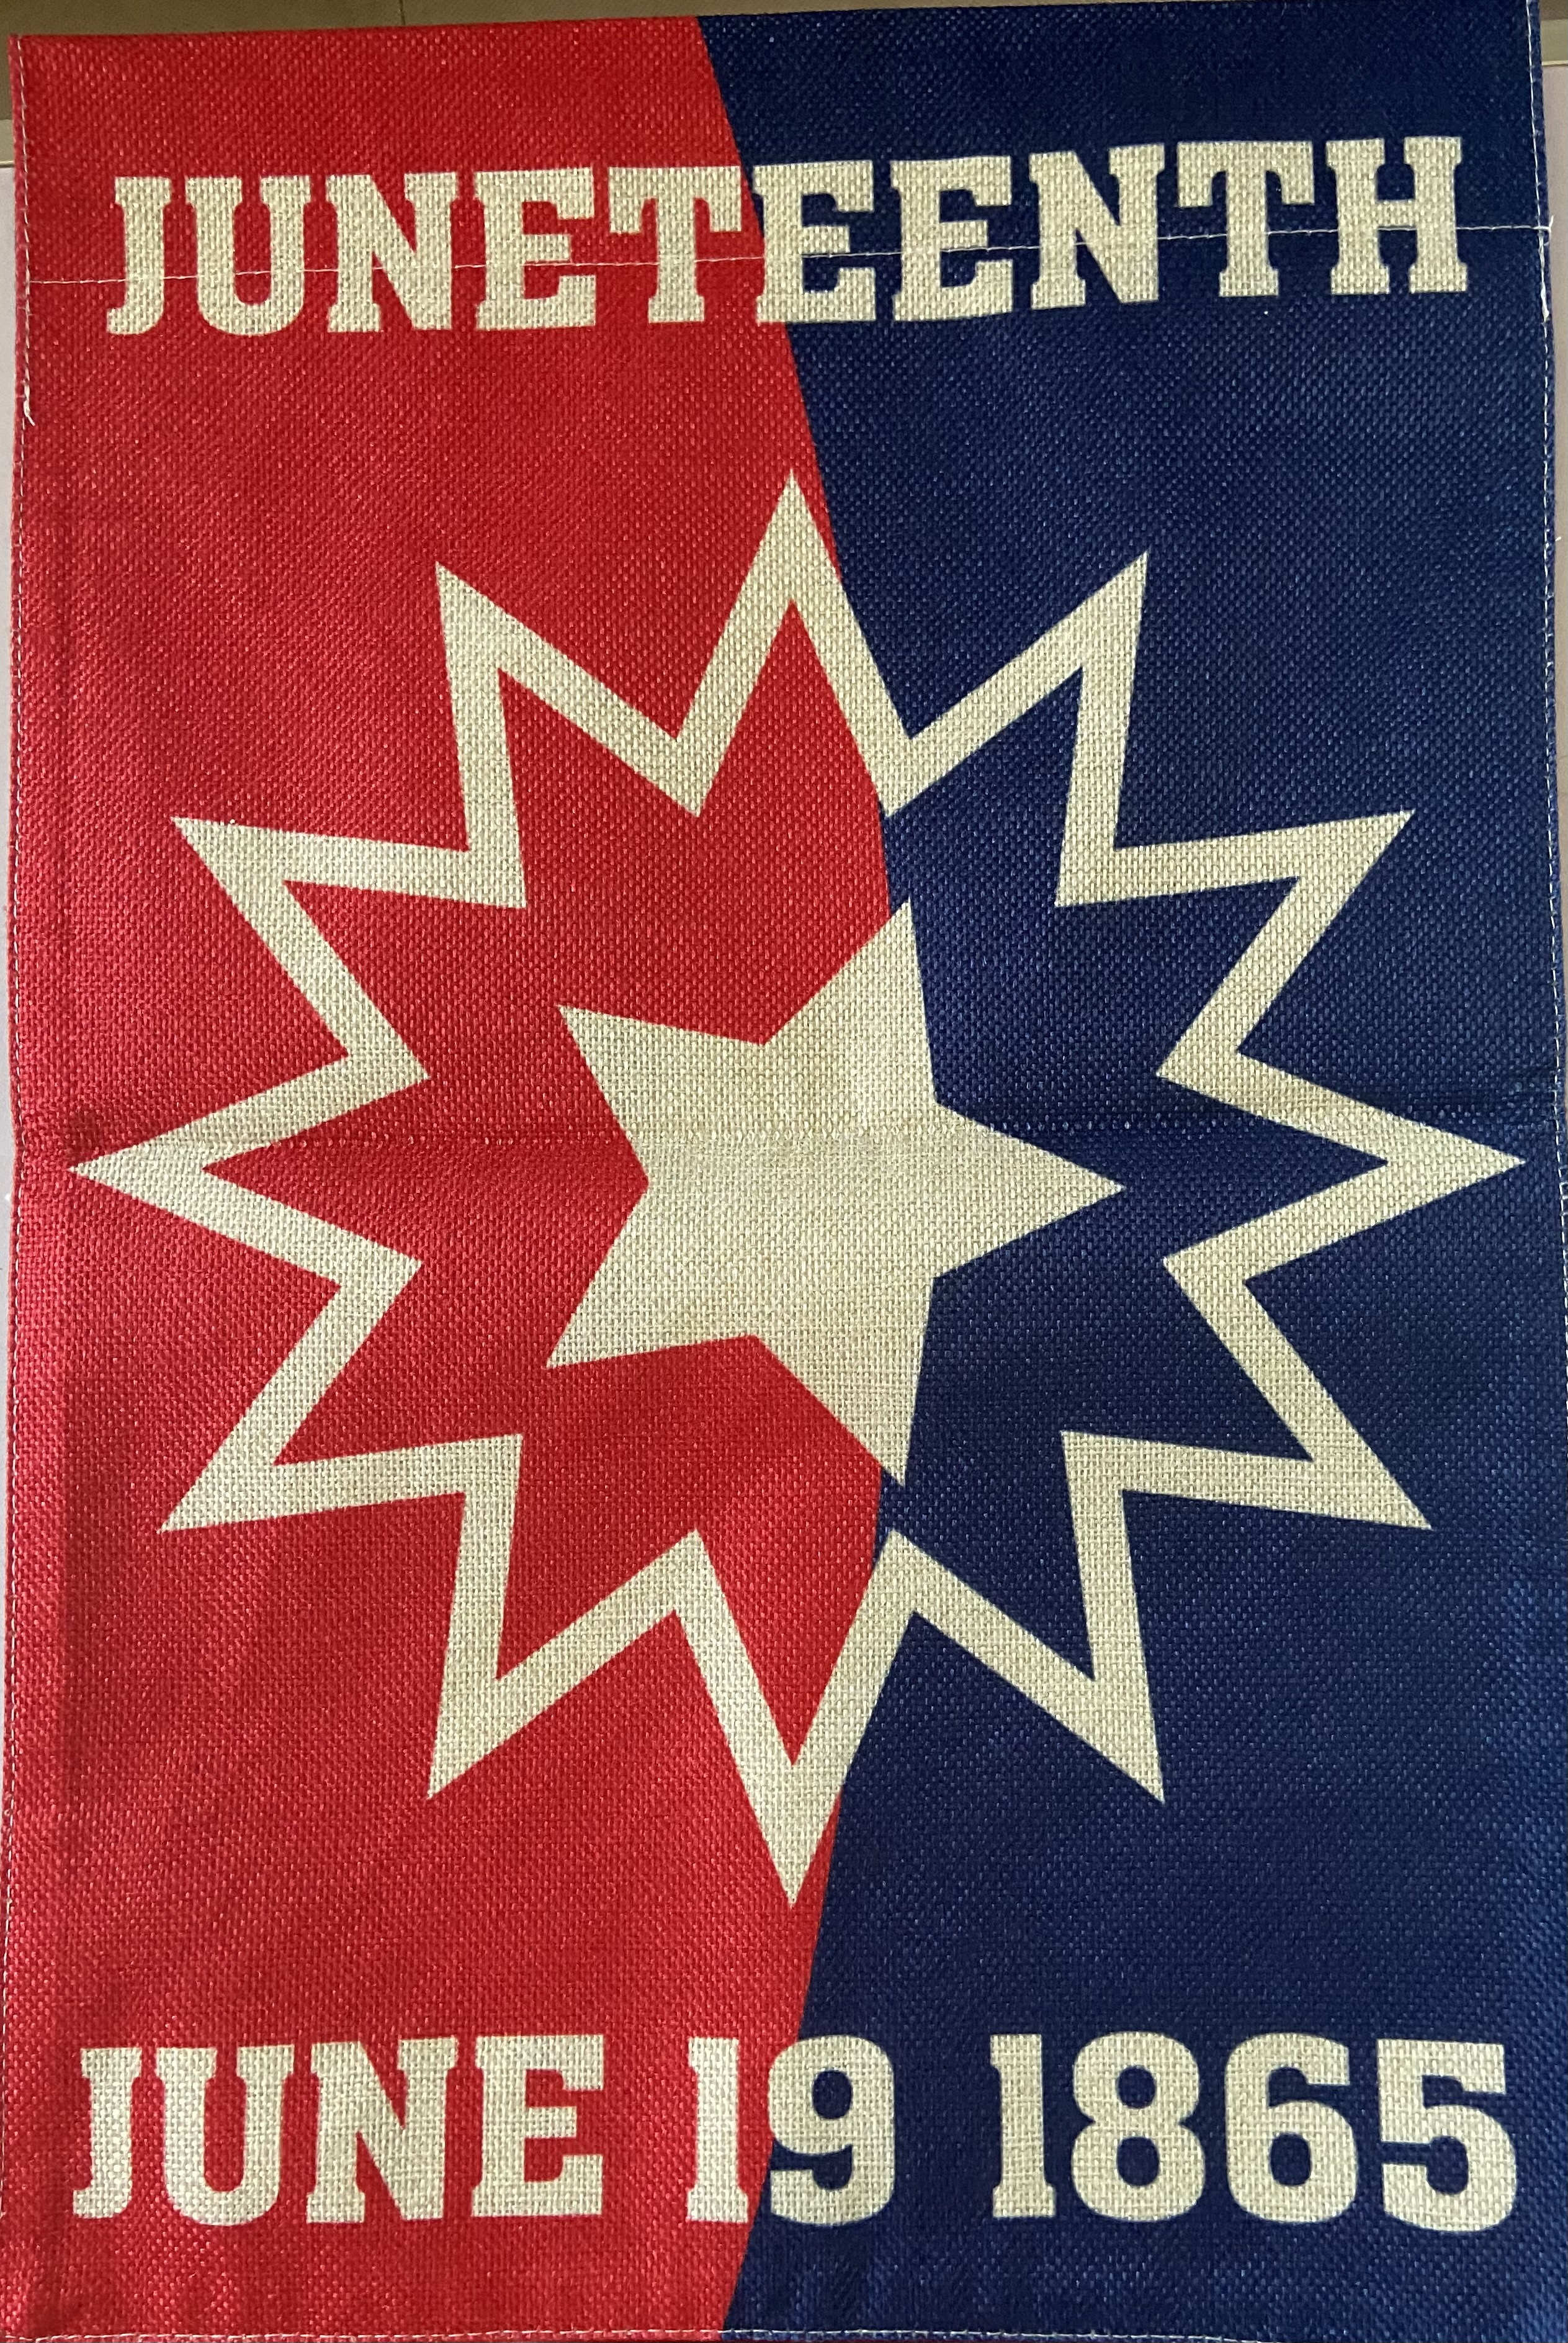 The Juneteenth Flag signals the true day of liberation for the remaining enslaved African ancestors who were notified of their freedom in Galveston, Texas.